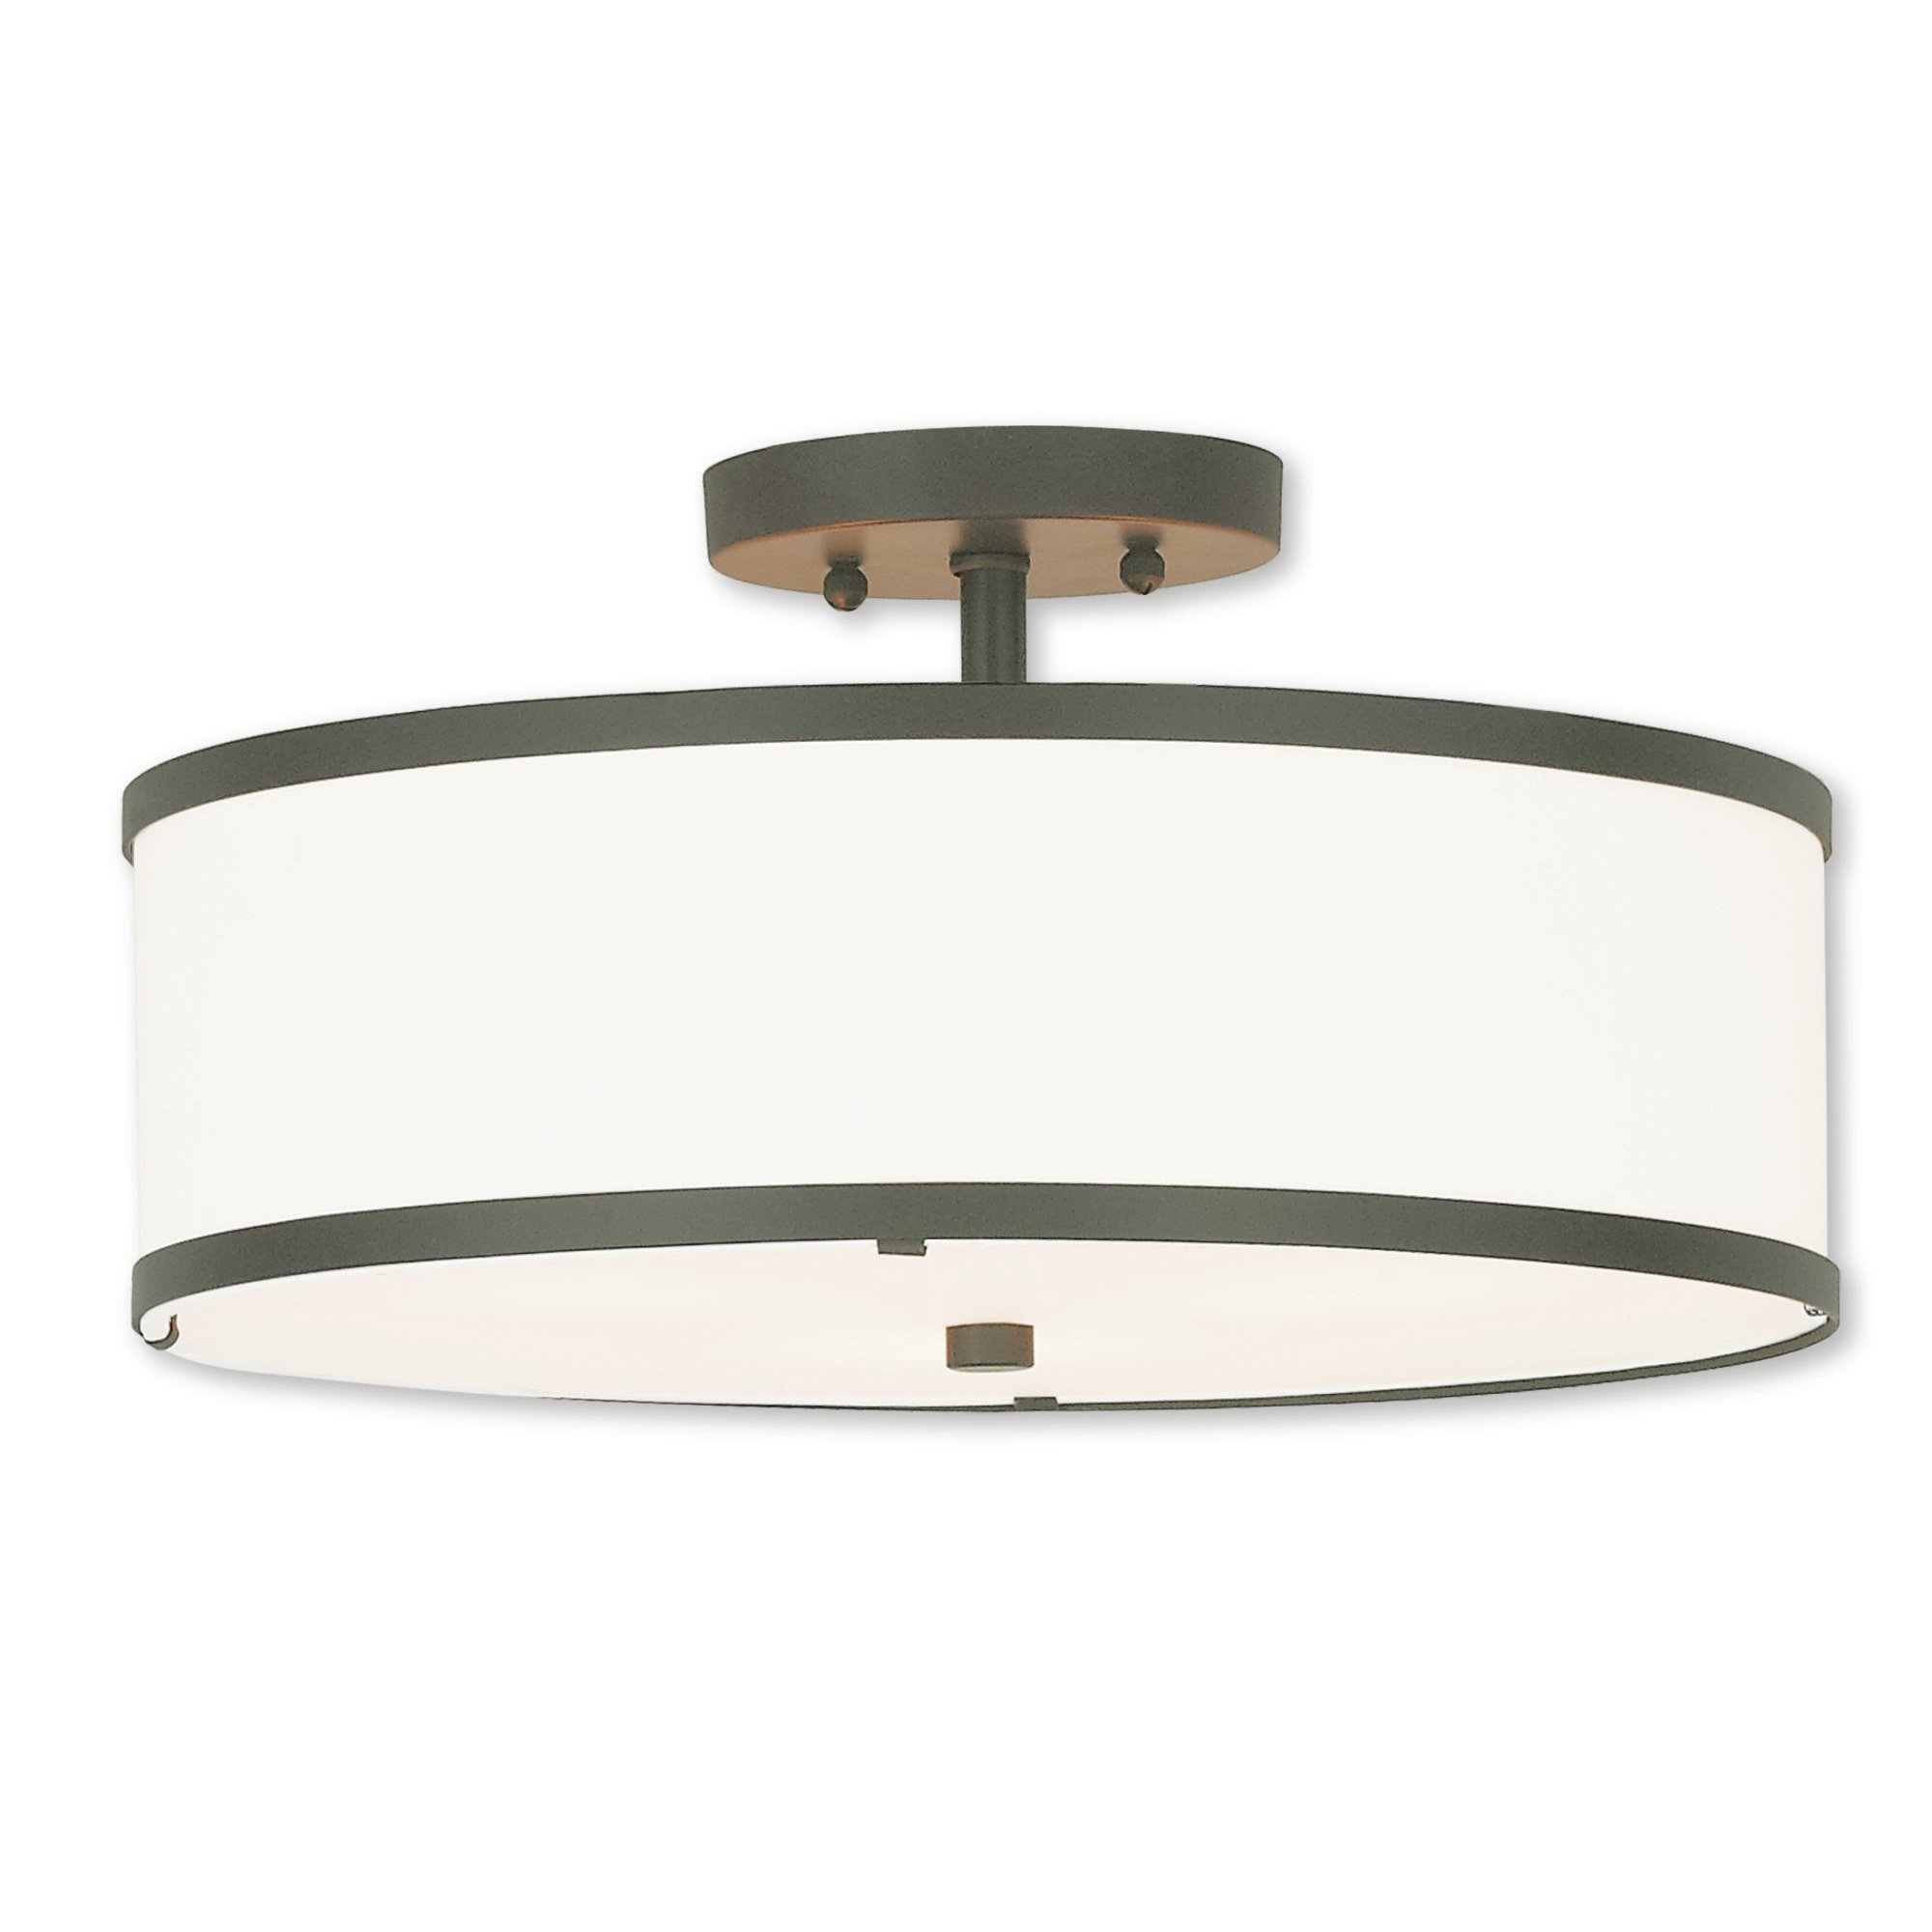 Breithaup Drum Cylinder Shade 3 Light Semi Flush Mount Throughout Breithaup 4 Light Drum Chandeliers (View 15 of 30)